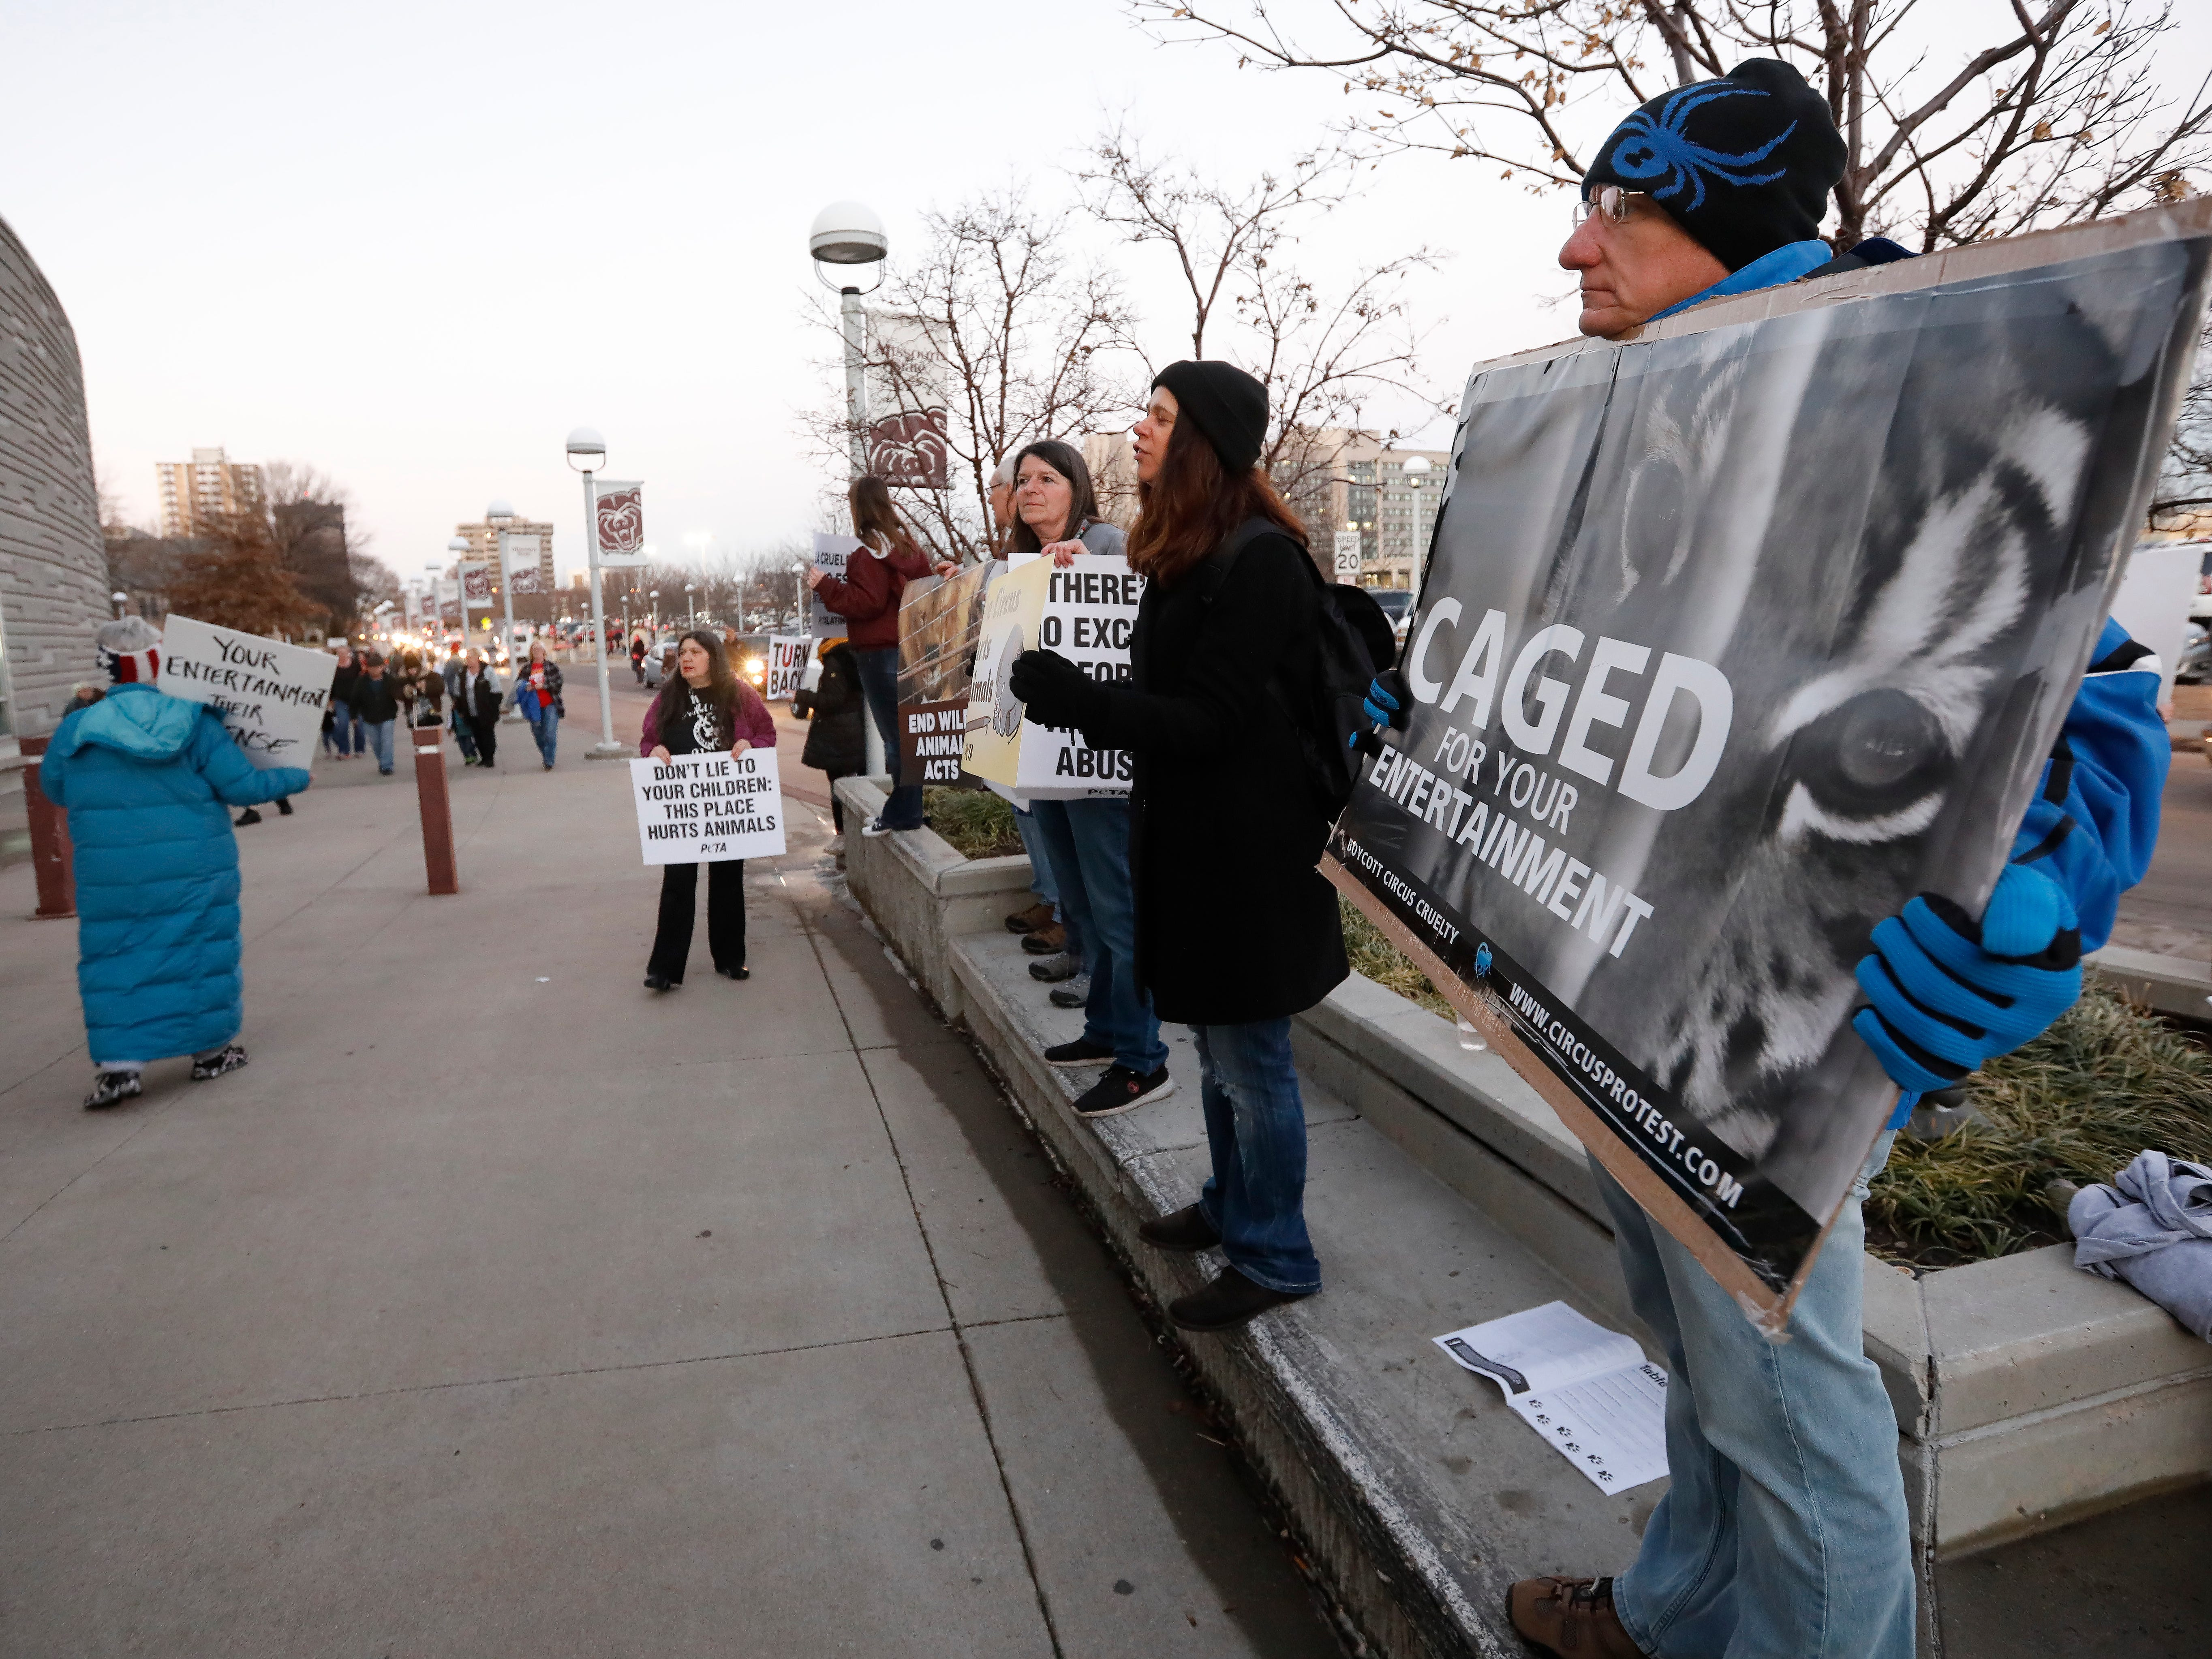 Animal rights activist Hans Gilgen, right, protests in front of JQH Arena against the use of animals in the Carden Circus on Friday, Feb. 1, 2019.